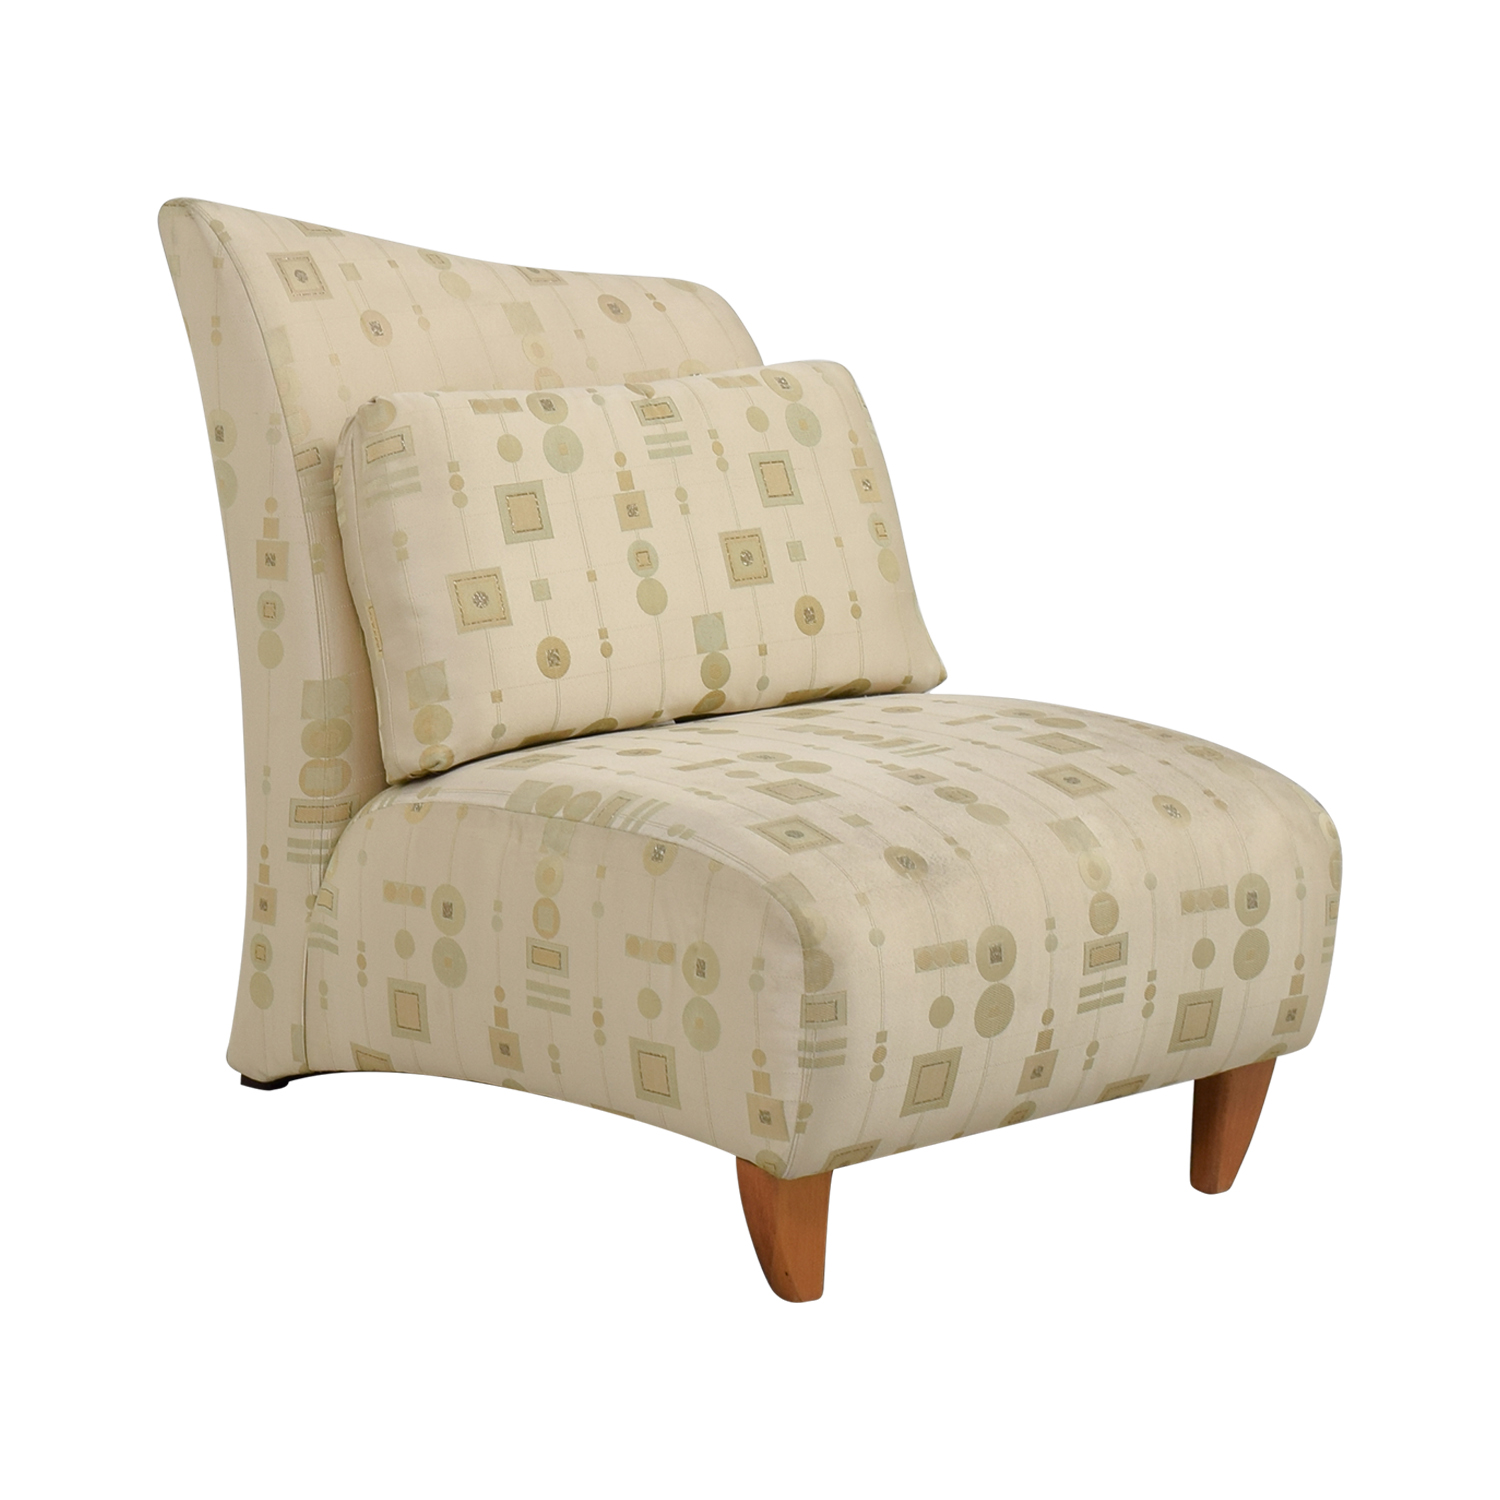 buy Art Deco White and Gold Accent Chair online